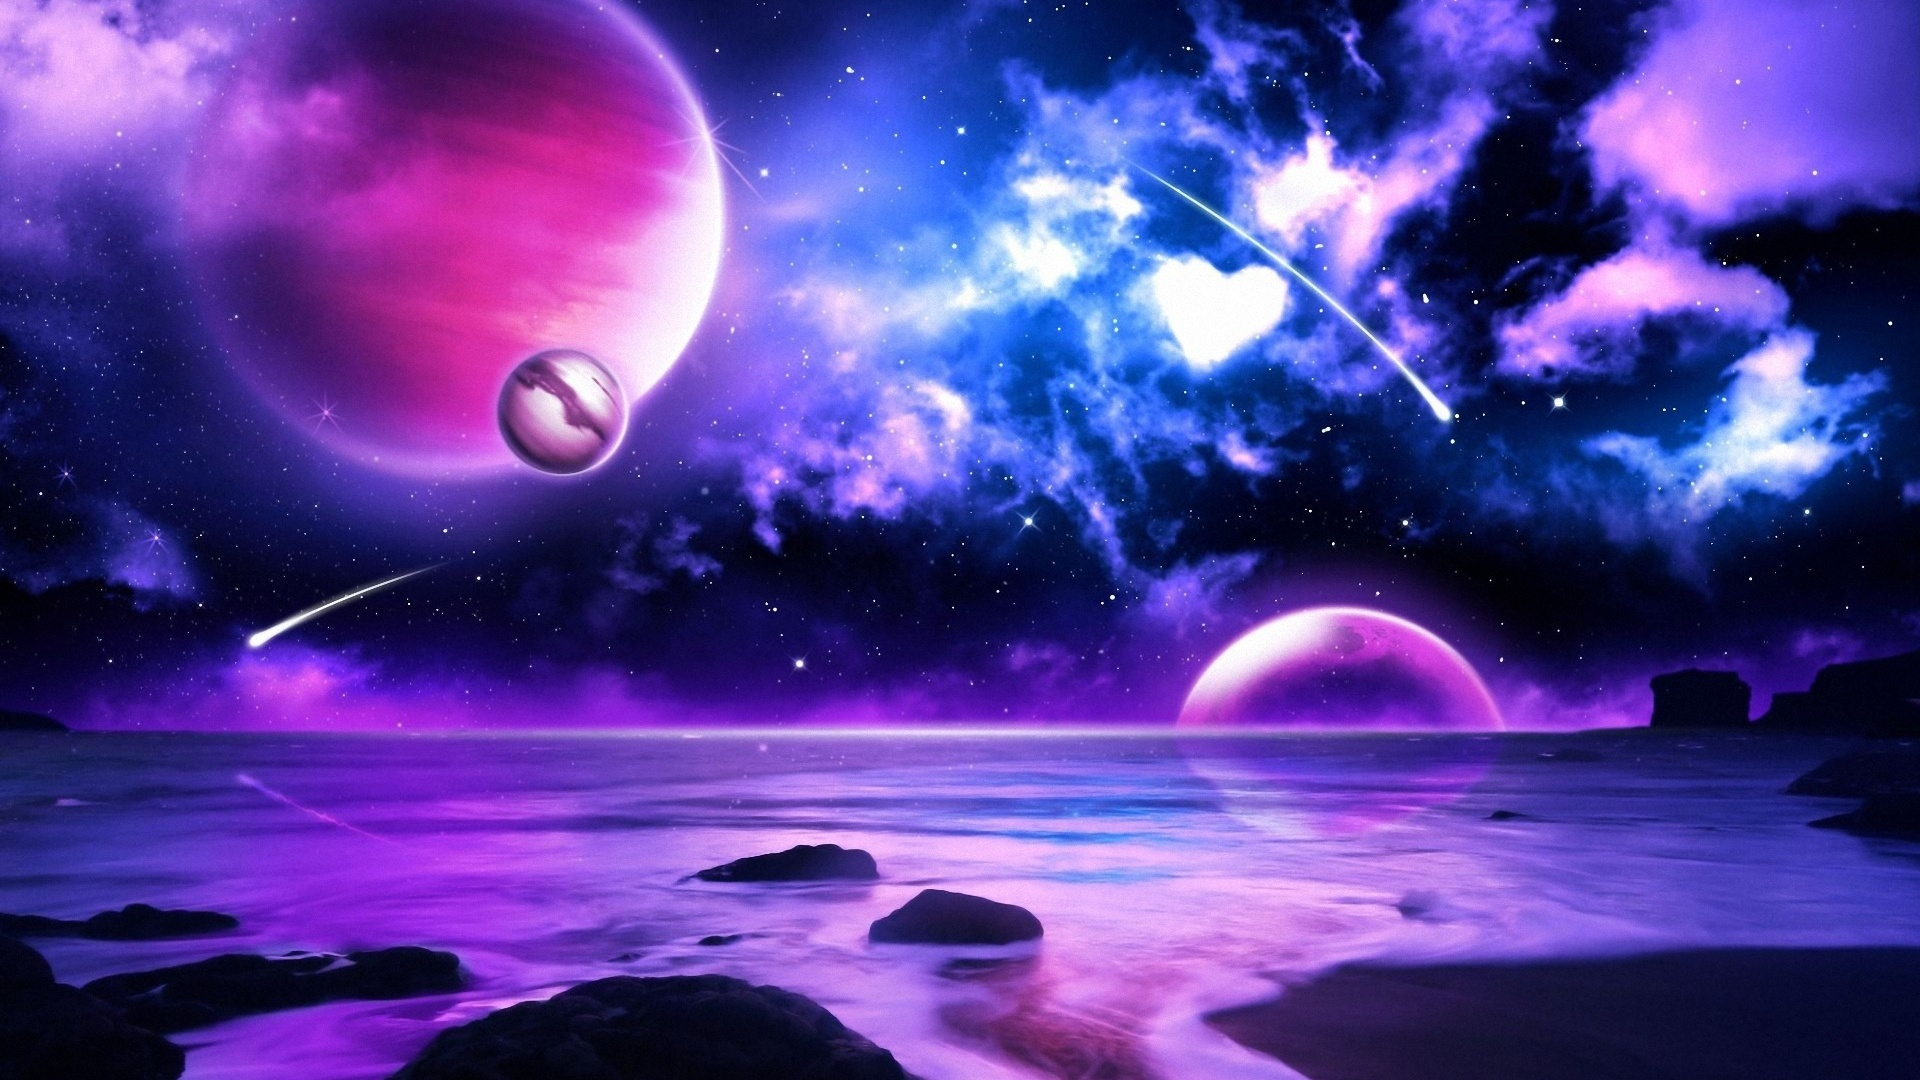 Wallpaper space hd gratuit t l charger sur ngn mag for Fond ecran les plus beau